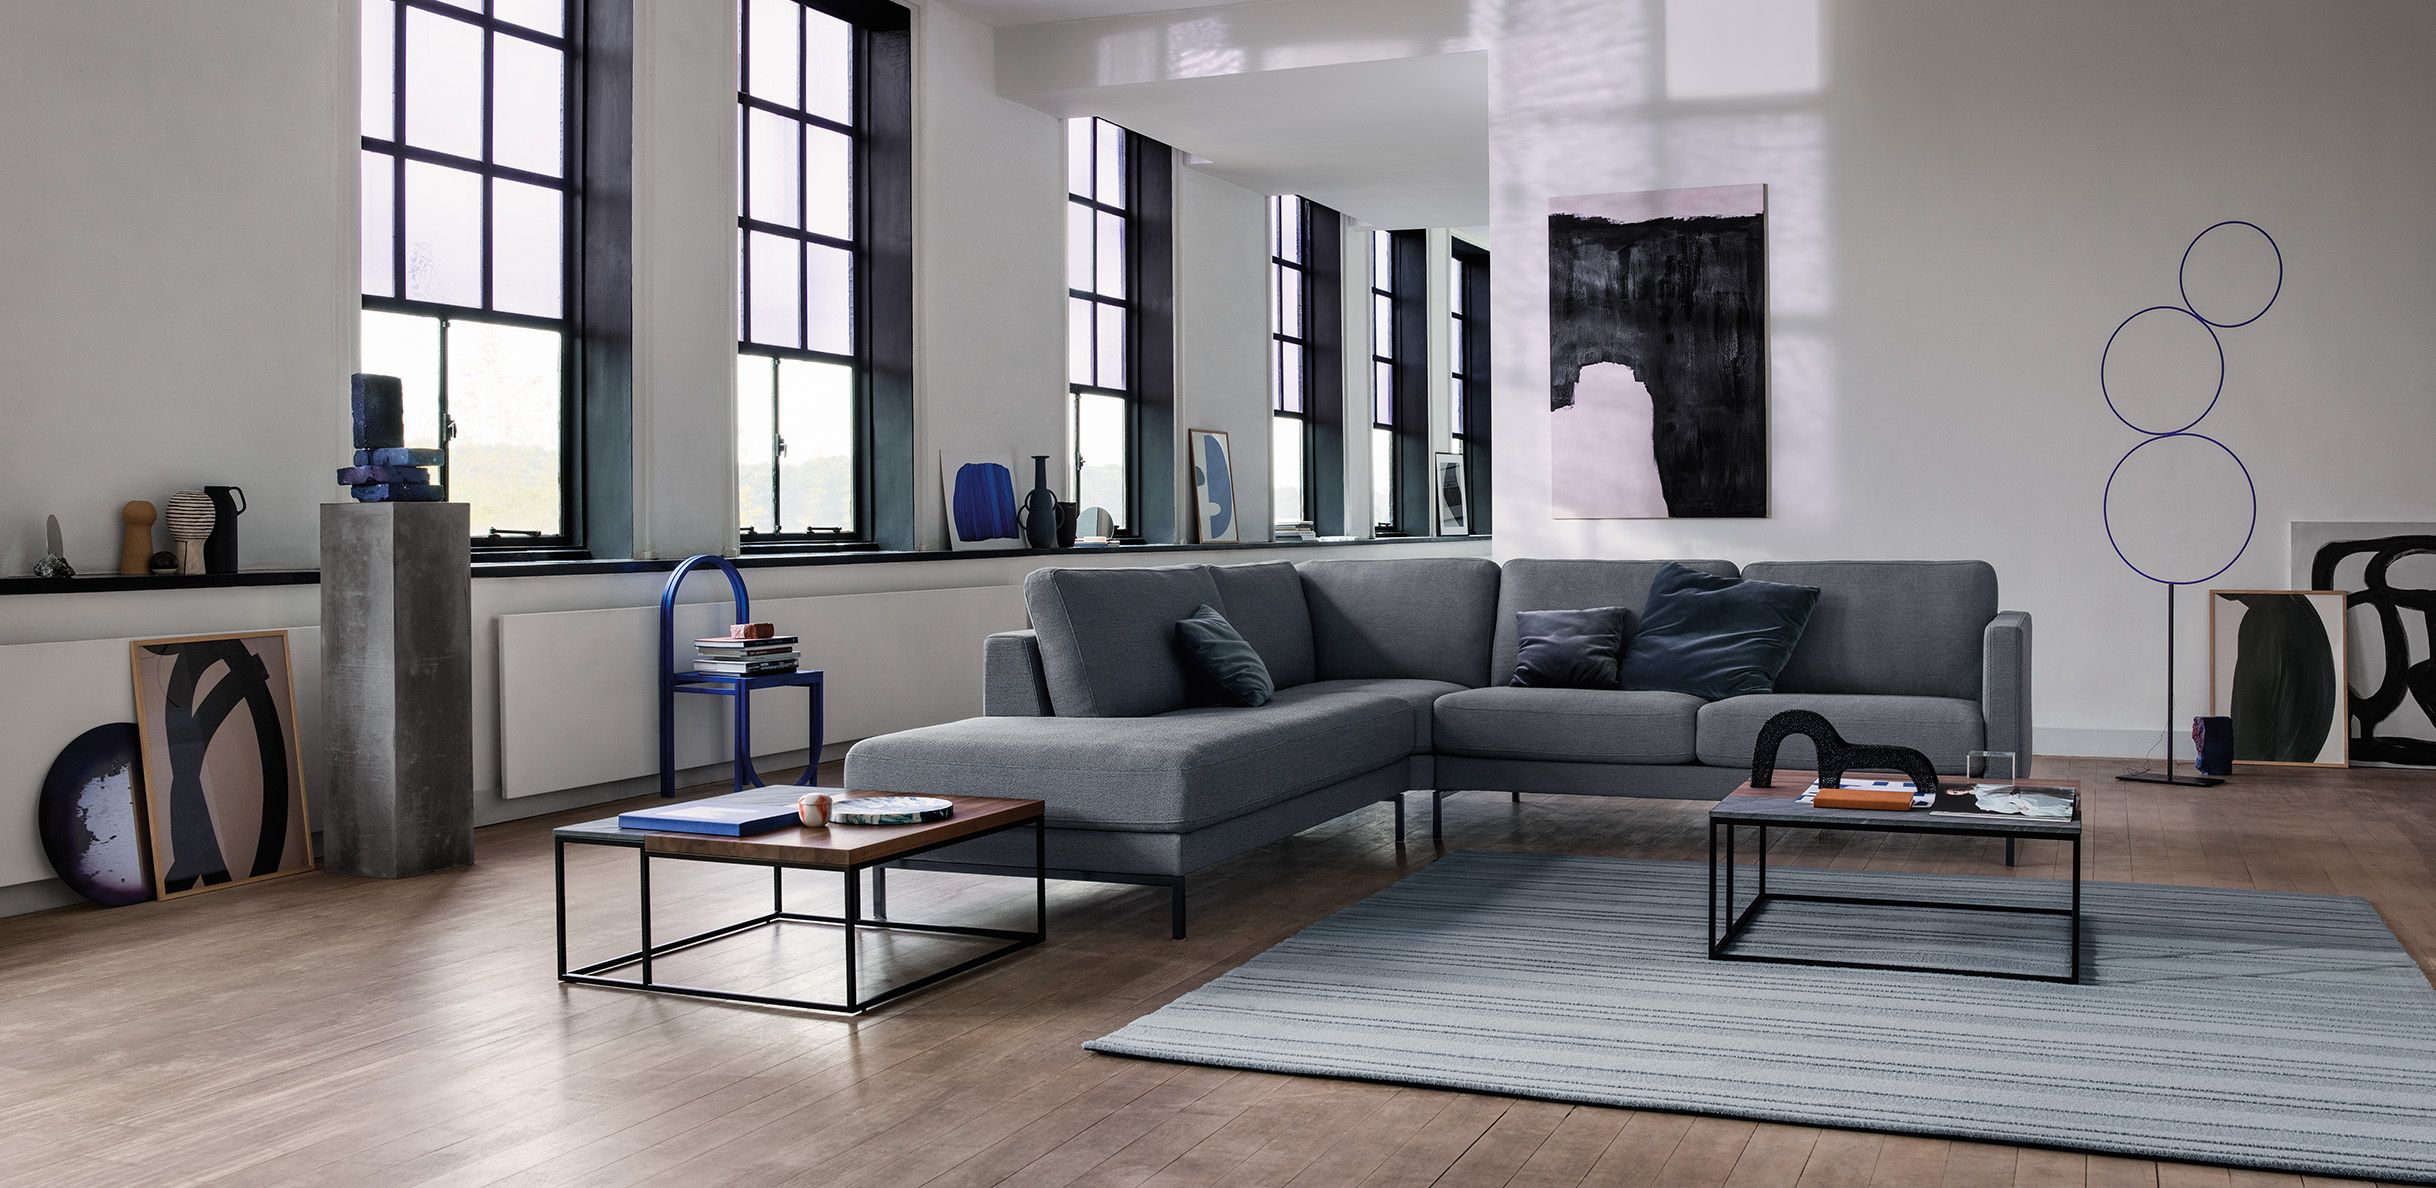 Ego Sofa System By Rolf Benz Timeless Elegance Contemporary Design And Excellent Workmanship Rolfbenz Rolfbenzegos Luxury Furniture Luxury Sofa Furniture